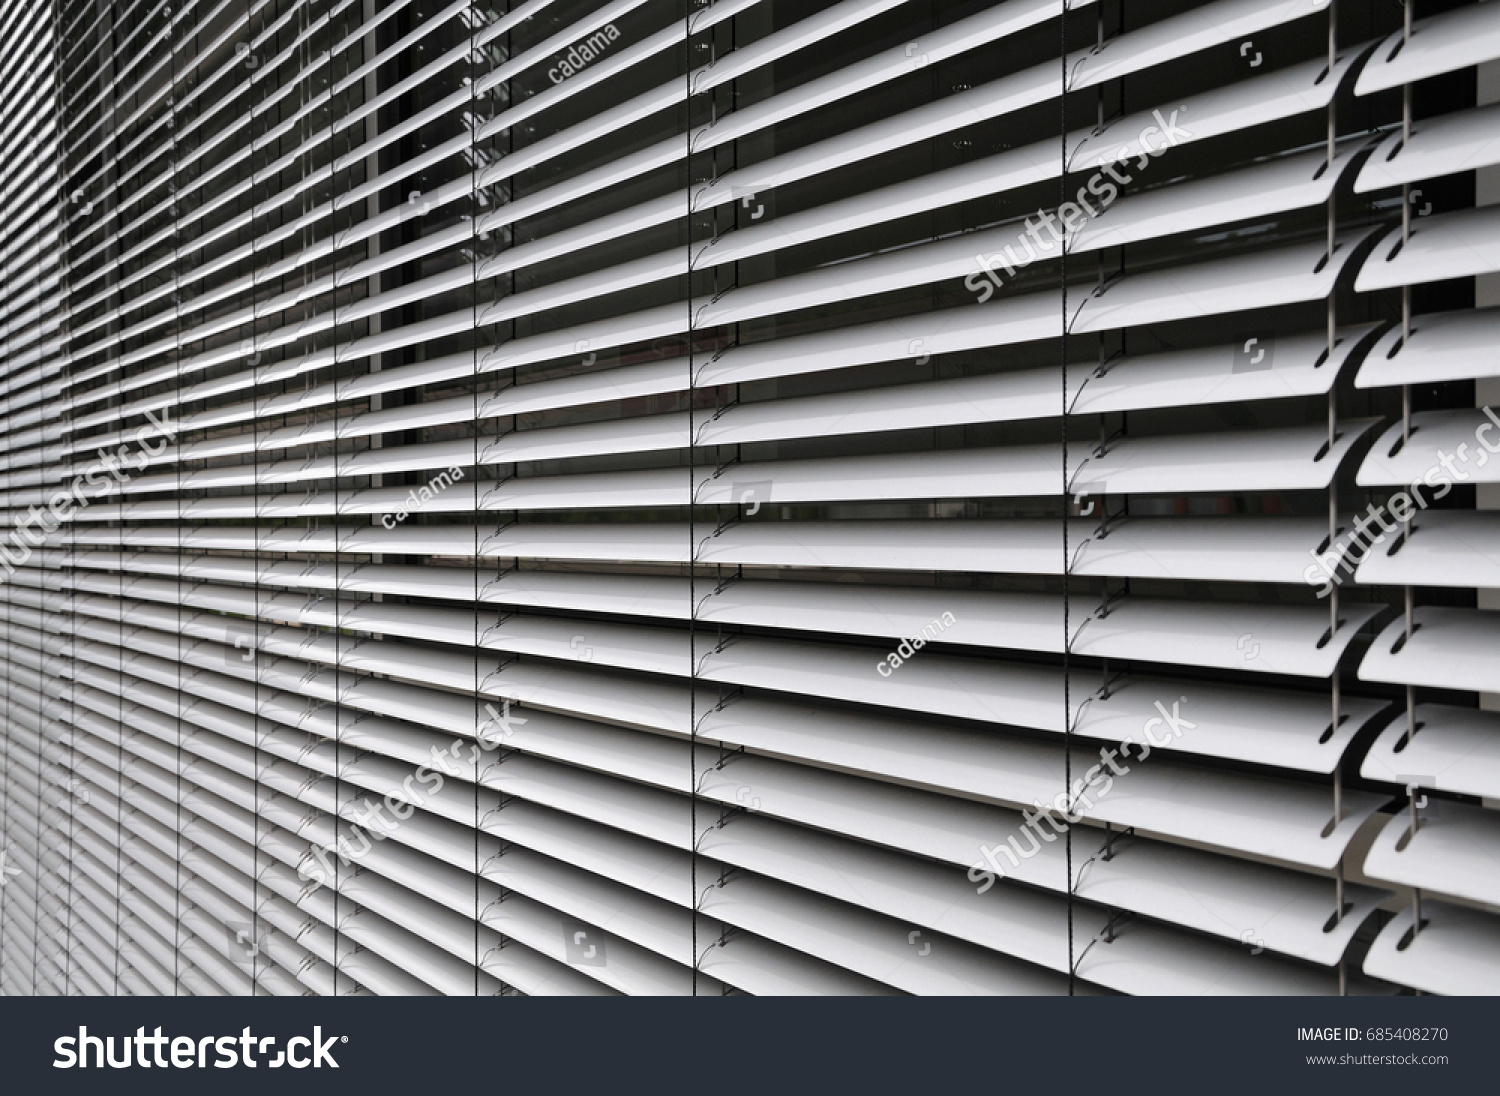 popular metal mice blinds and blind aluminum window coverings